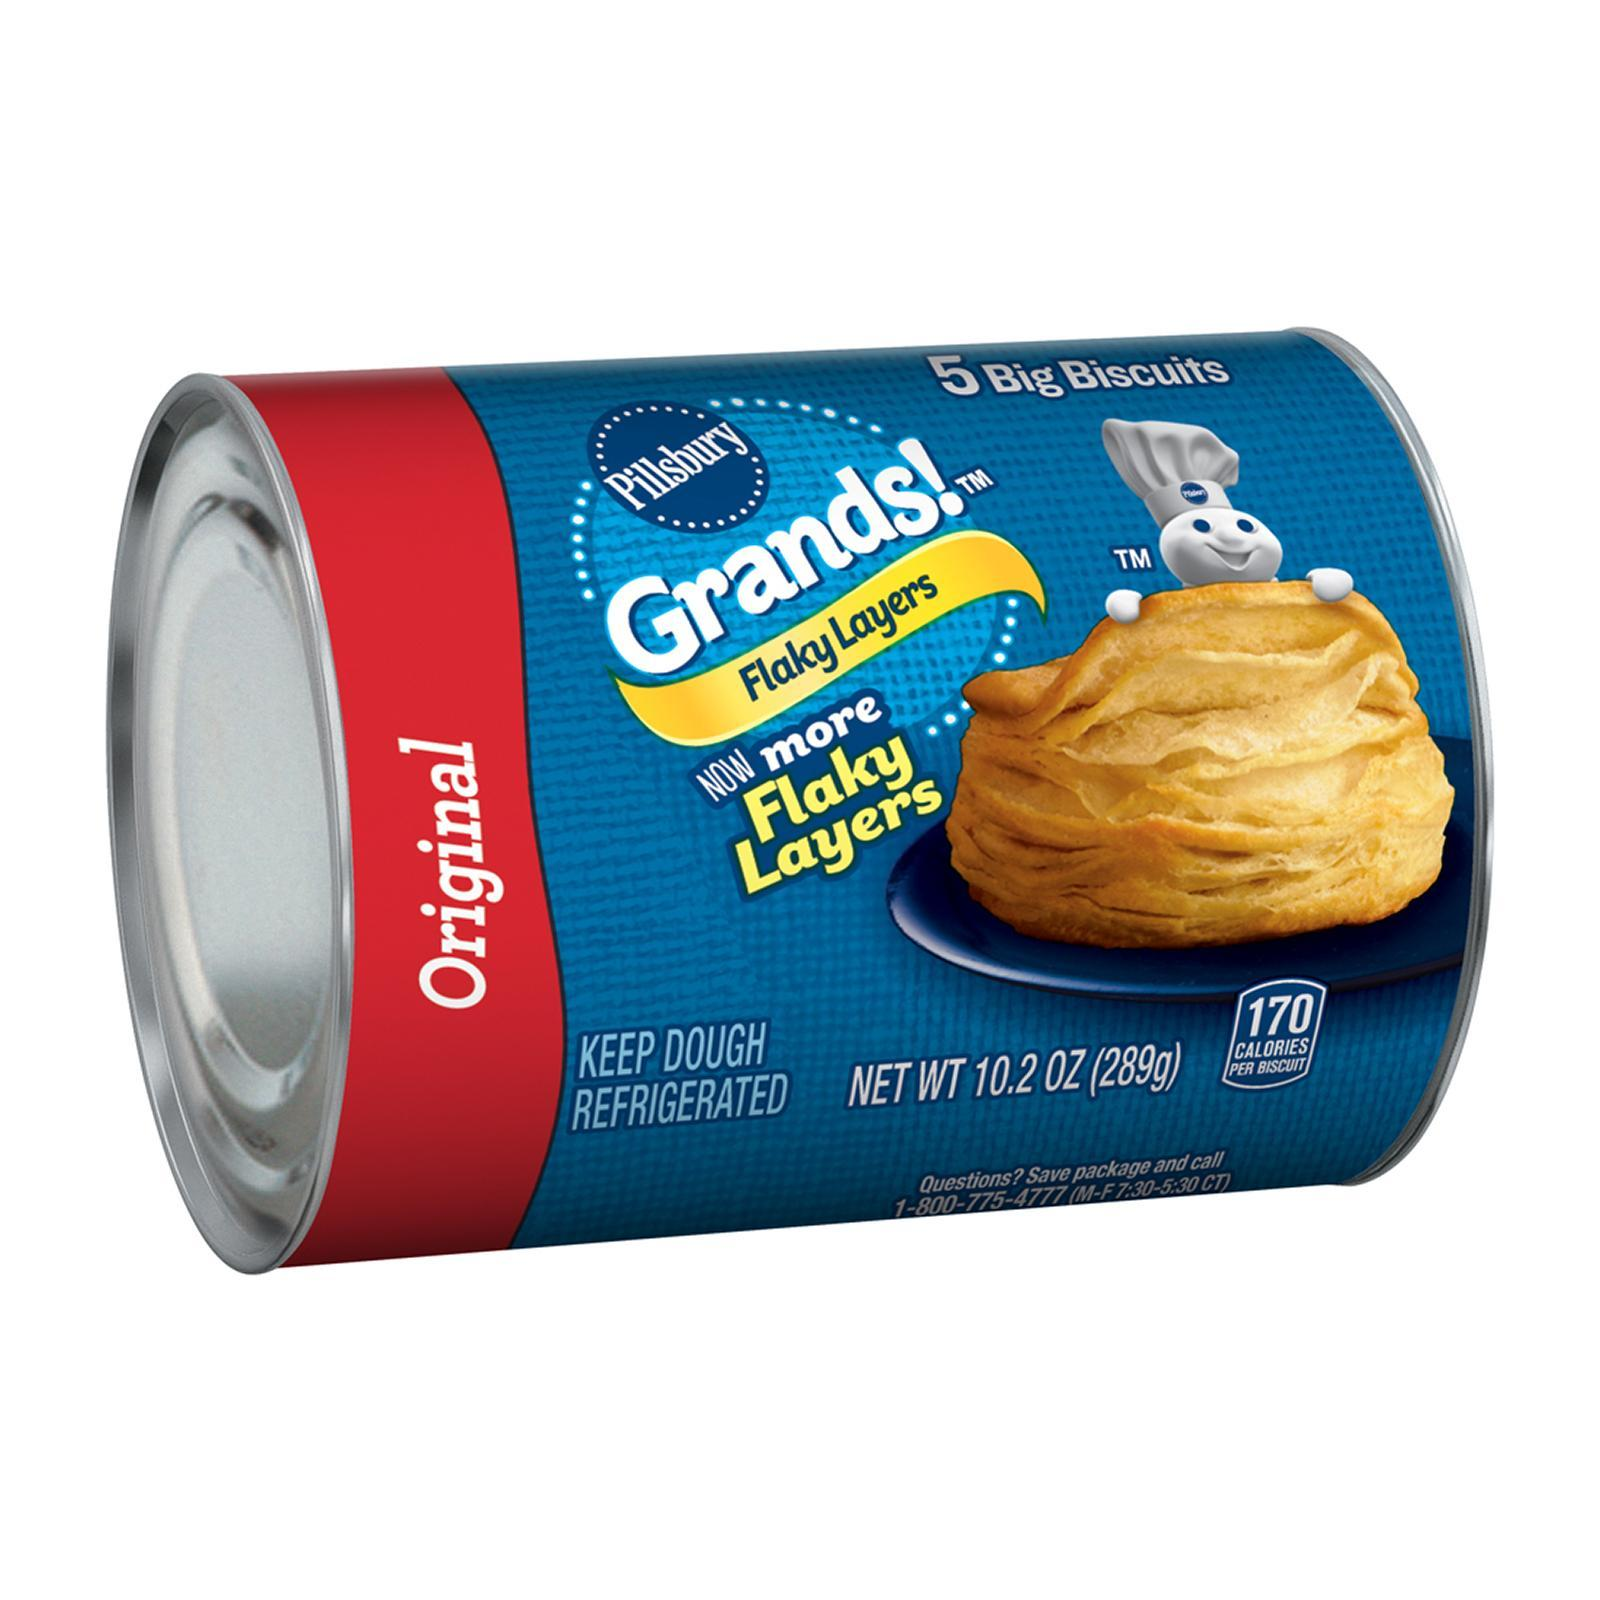 Pillsbury Grands! Chilled Flaky Layers Original Biscuits By Redmart.